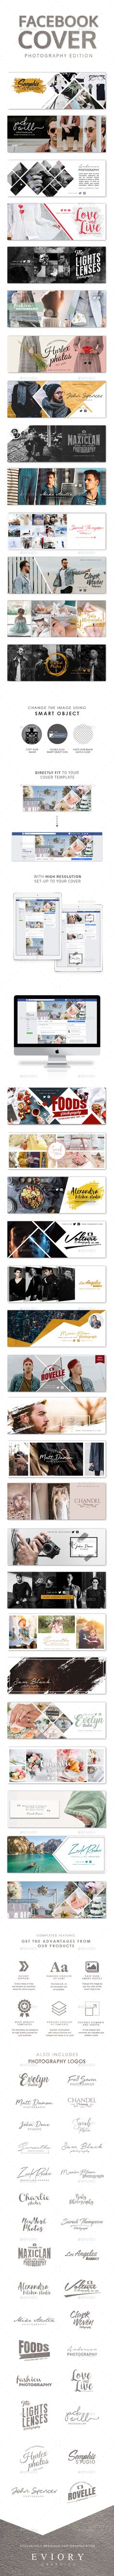 Facebook Cover Photography - Facebook Timeline Covers Social Media box, bundle, business, celebration, christmas, clothes, color, cover, discounts, facebook, facebook cover, facebook fashion, image, image banner, instagram, link, link banner, New Year's Eve, offers, profile, retro, sales, season's greetings, shop online, social media, special price, timeline, timeline cover, web